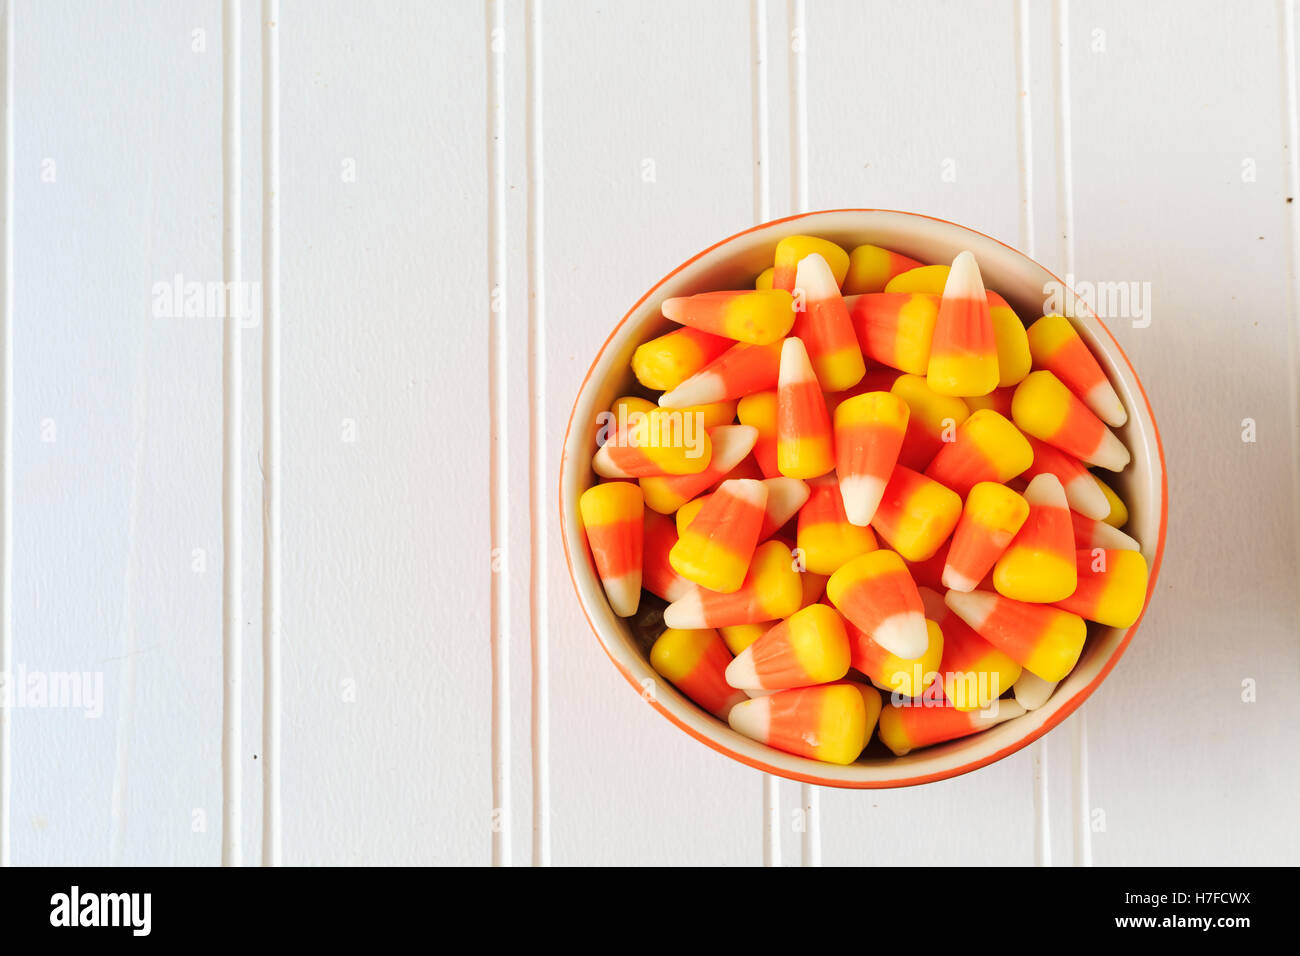 A bowl of candy corn on a wooden table. - Stock Image